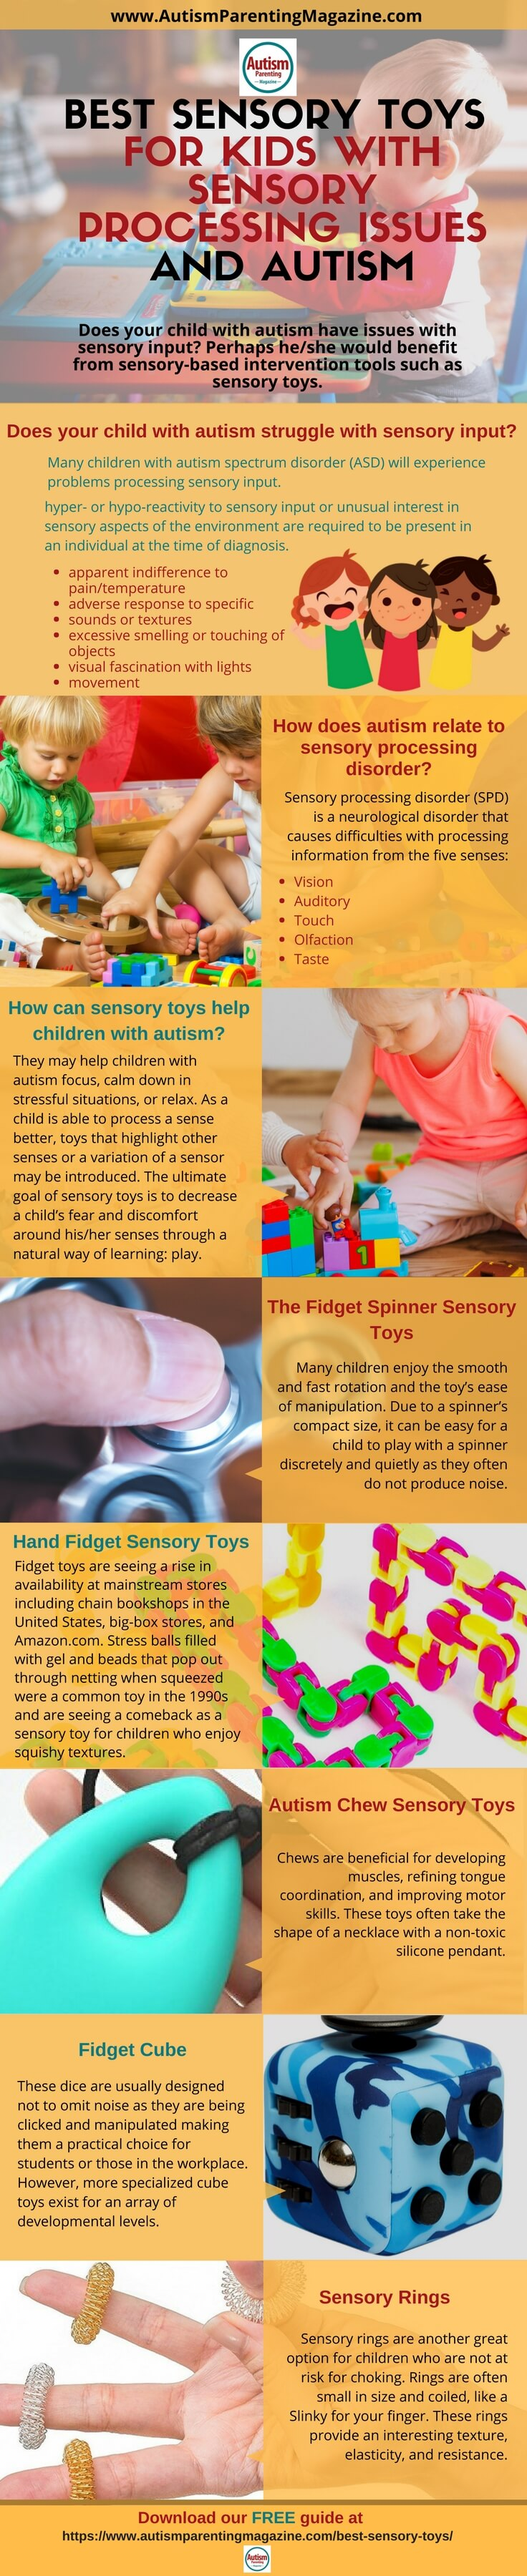 Download our Free Guide - Best Sensory Toys for Kids with Sensory Processing Issues and Autism http://www.autismparentingmagazine.com/best-sensory-toys/